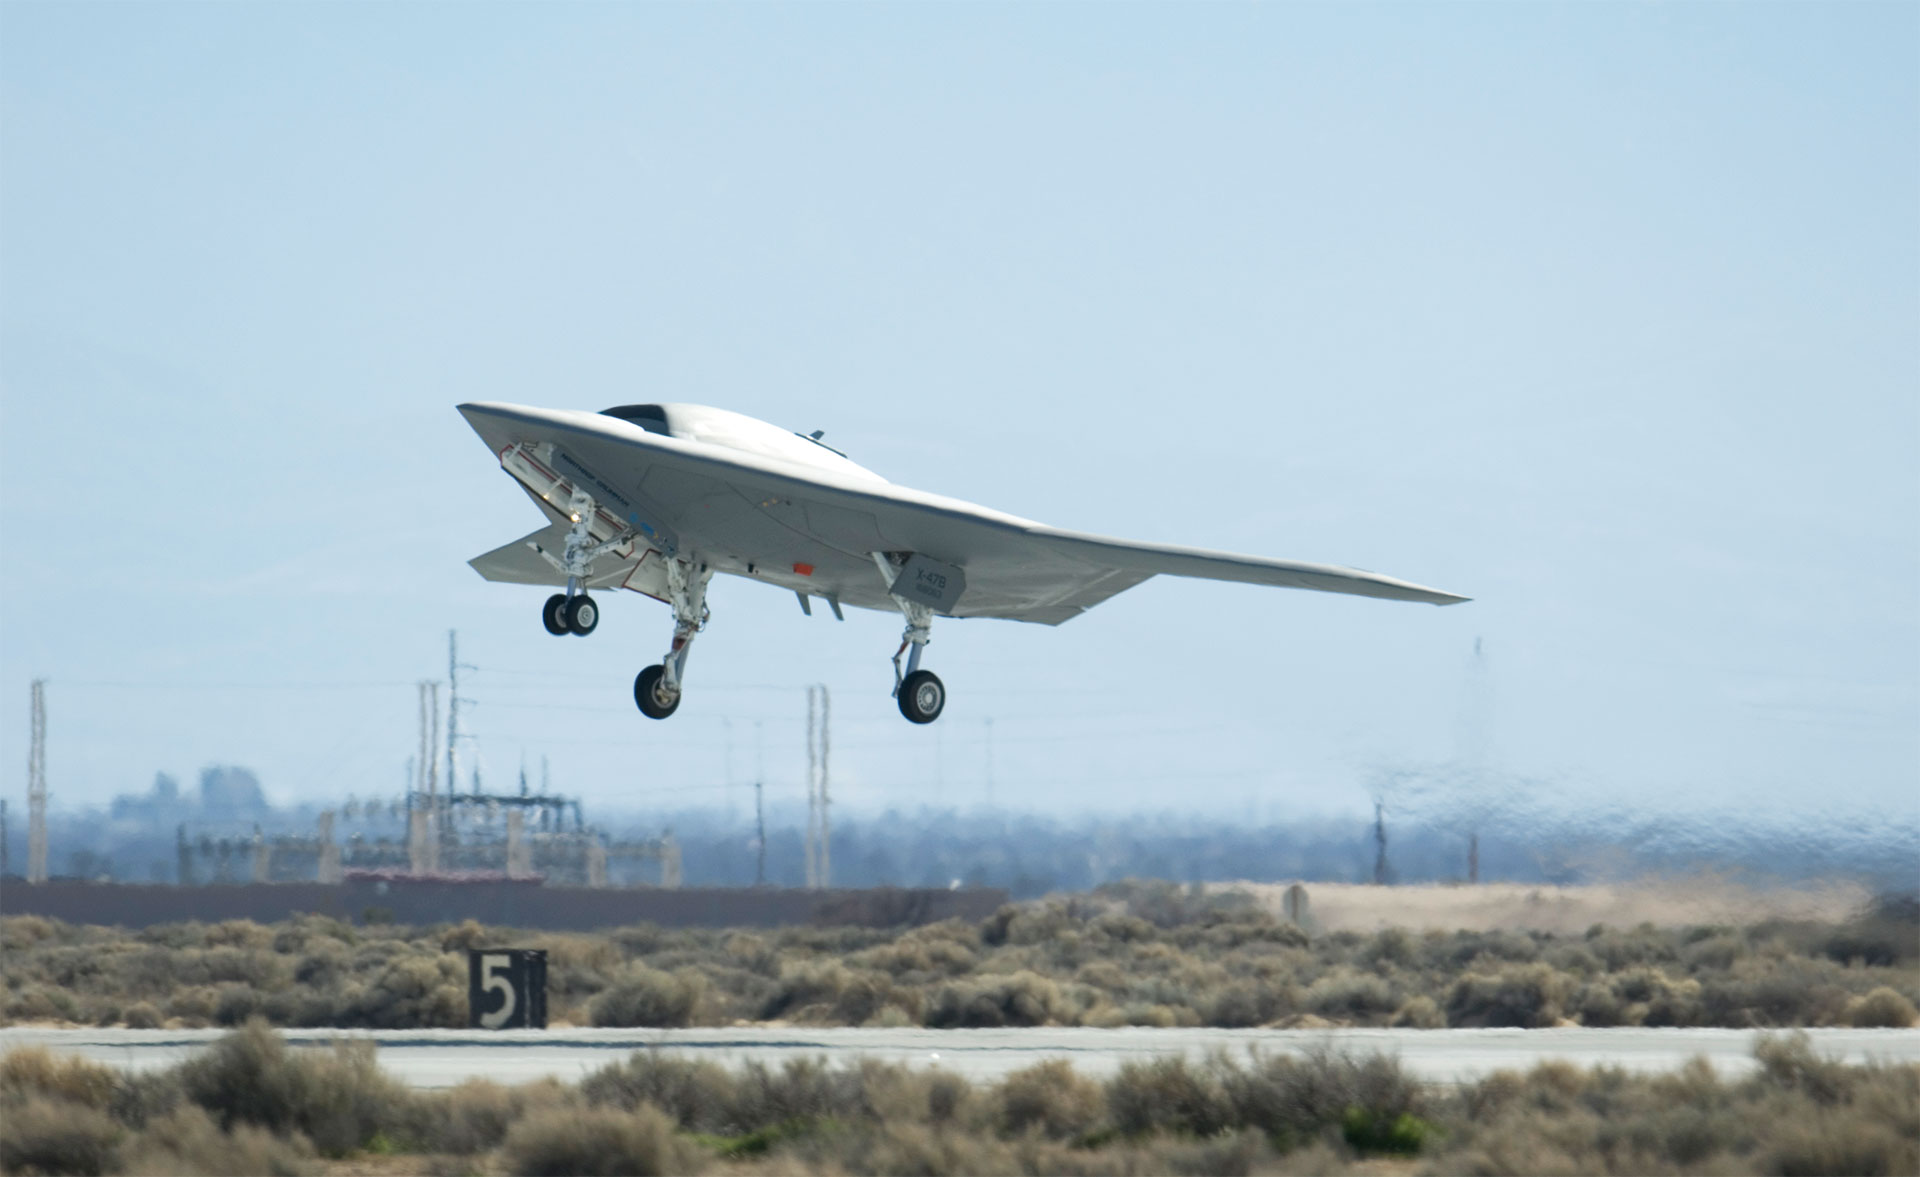 A Navy X-47B Unmanned Combat Air System Demonstration aircraft takes off and flies for the first time Feb. 4, 2011, at Edwards Air Force Base, Calif. The Northrop Grumman-built aircraft flew for 29 minutes during the flight test. (Via Wikimedia commons)